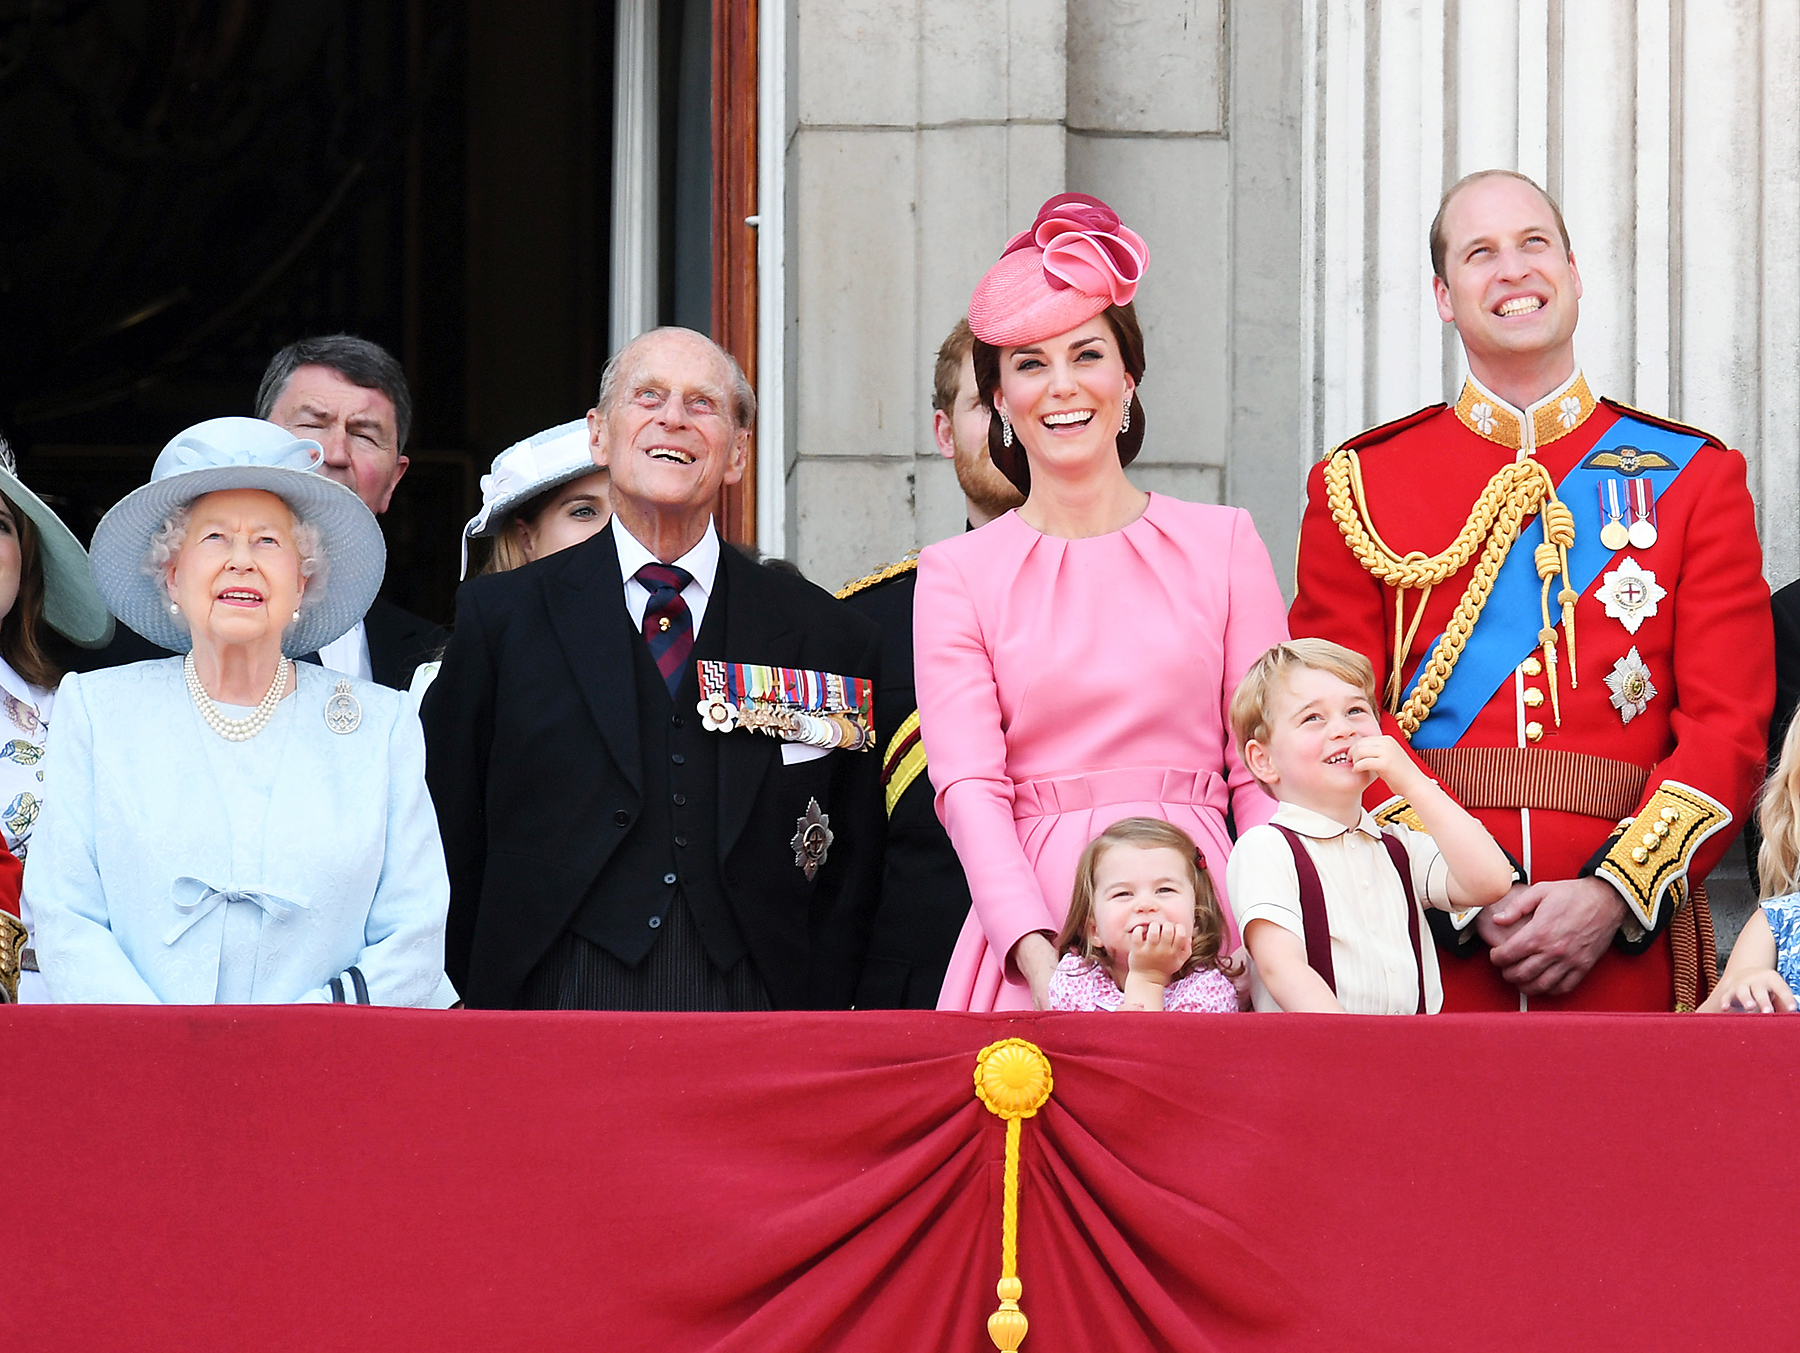 Queen Elizabeth II Prince Philip Kate Middleton Princess Charlotte Prince George Prince William